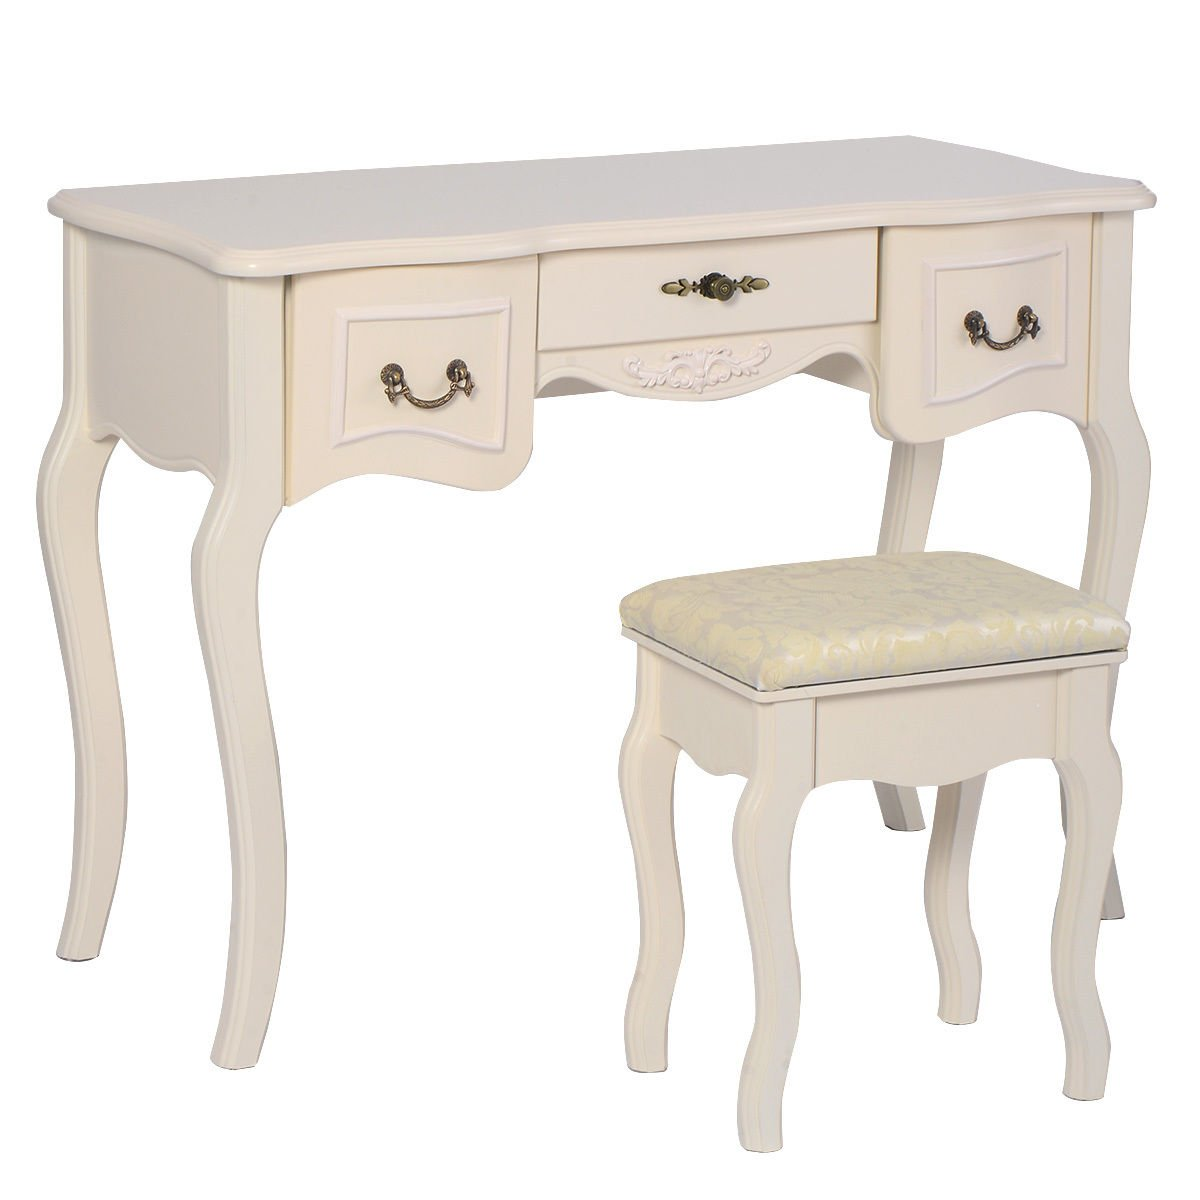 Giantex Tri Folding Vintage White Vanity Makeup Dressing Table Set 5 Drawers &stool 4